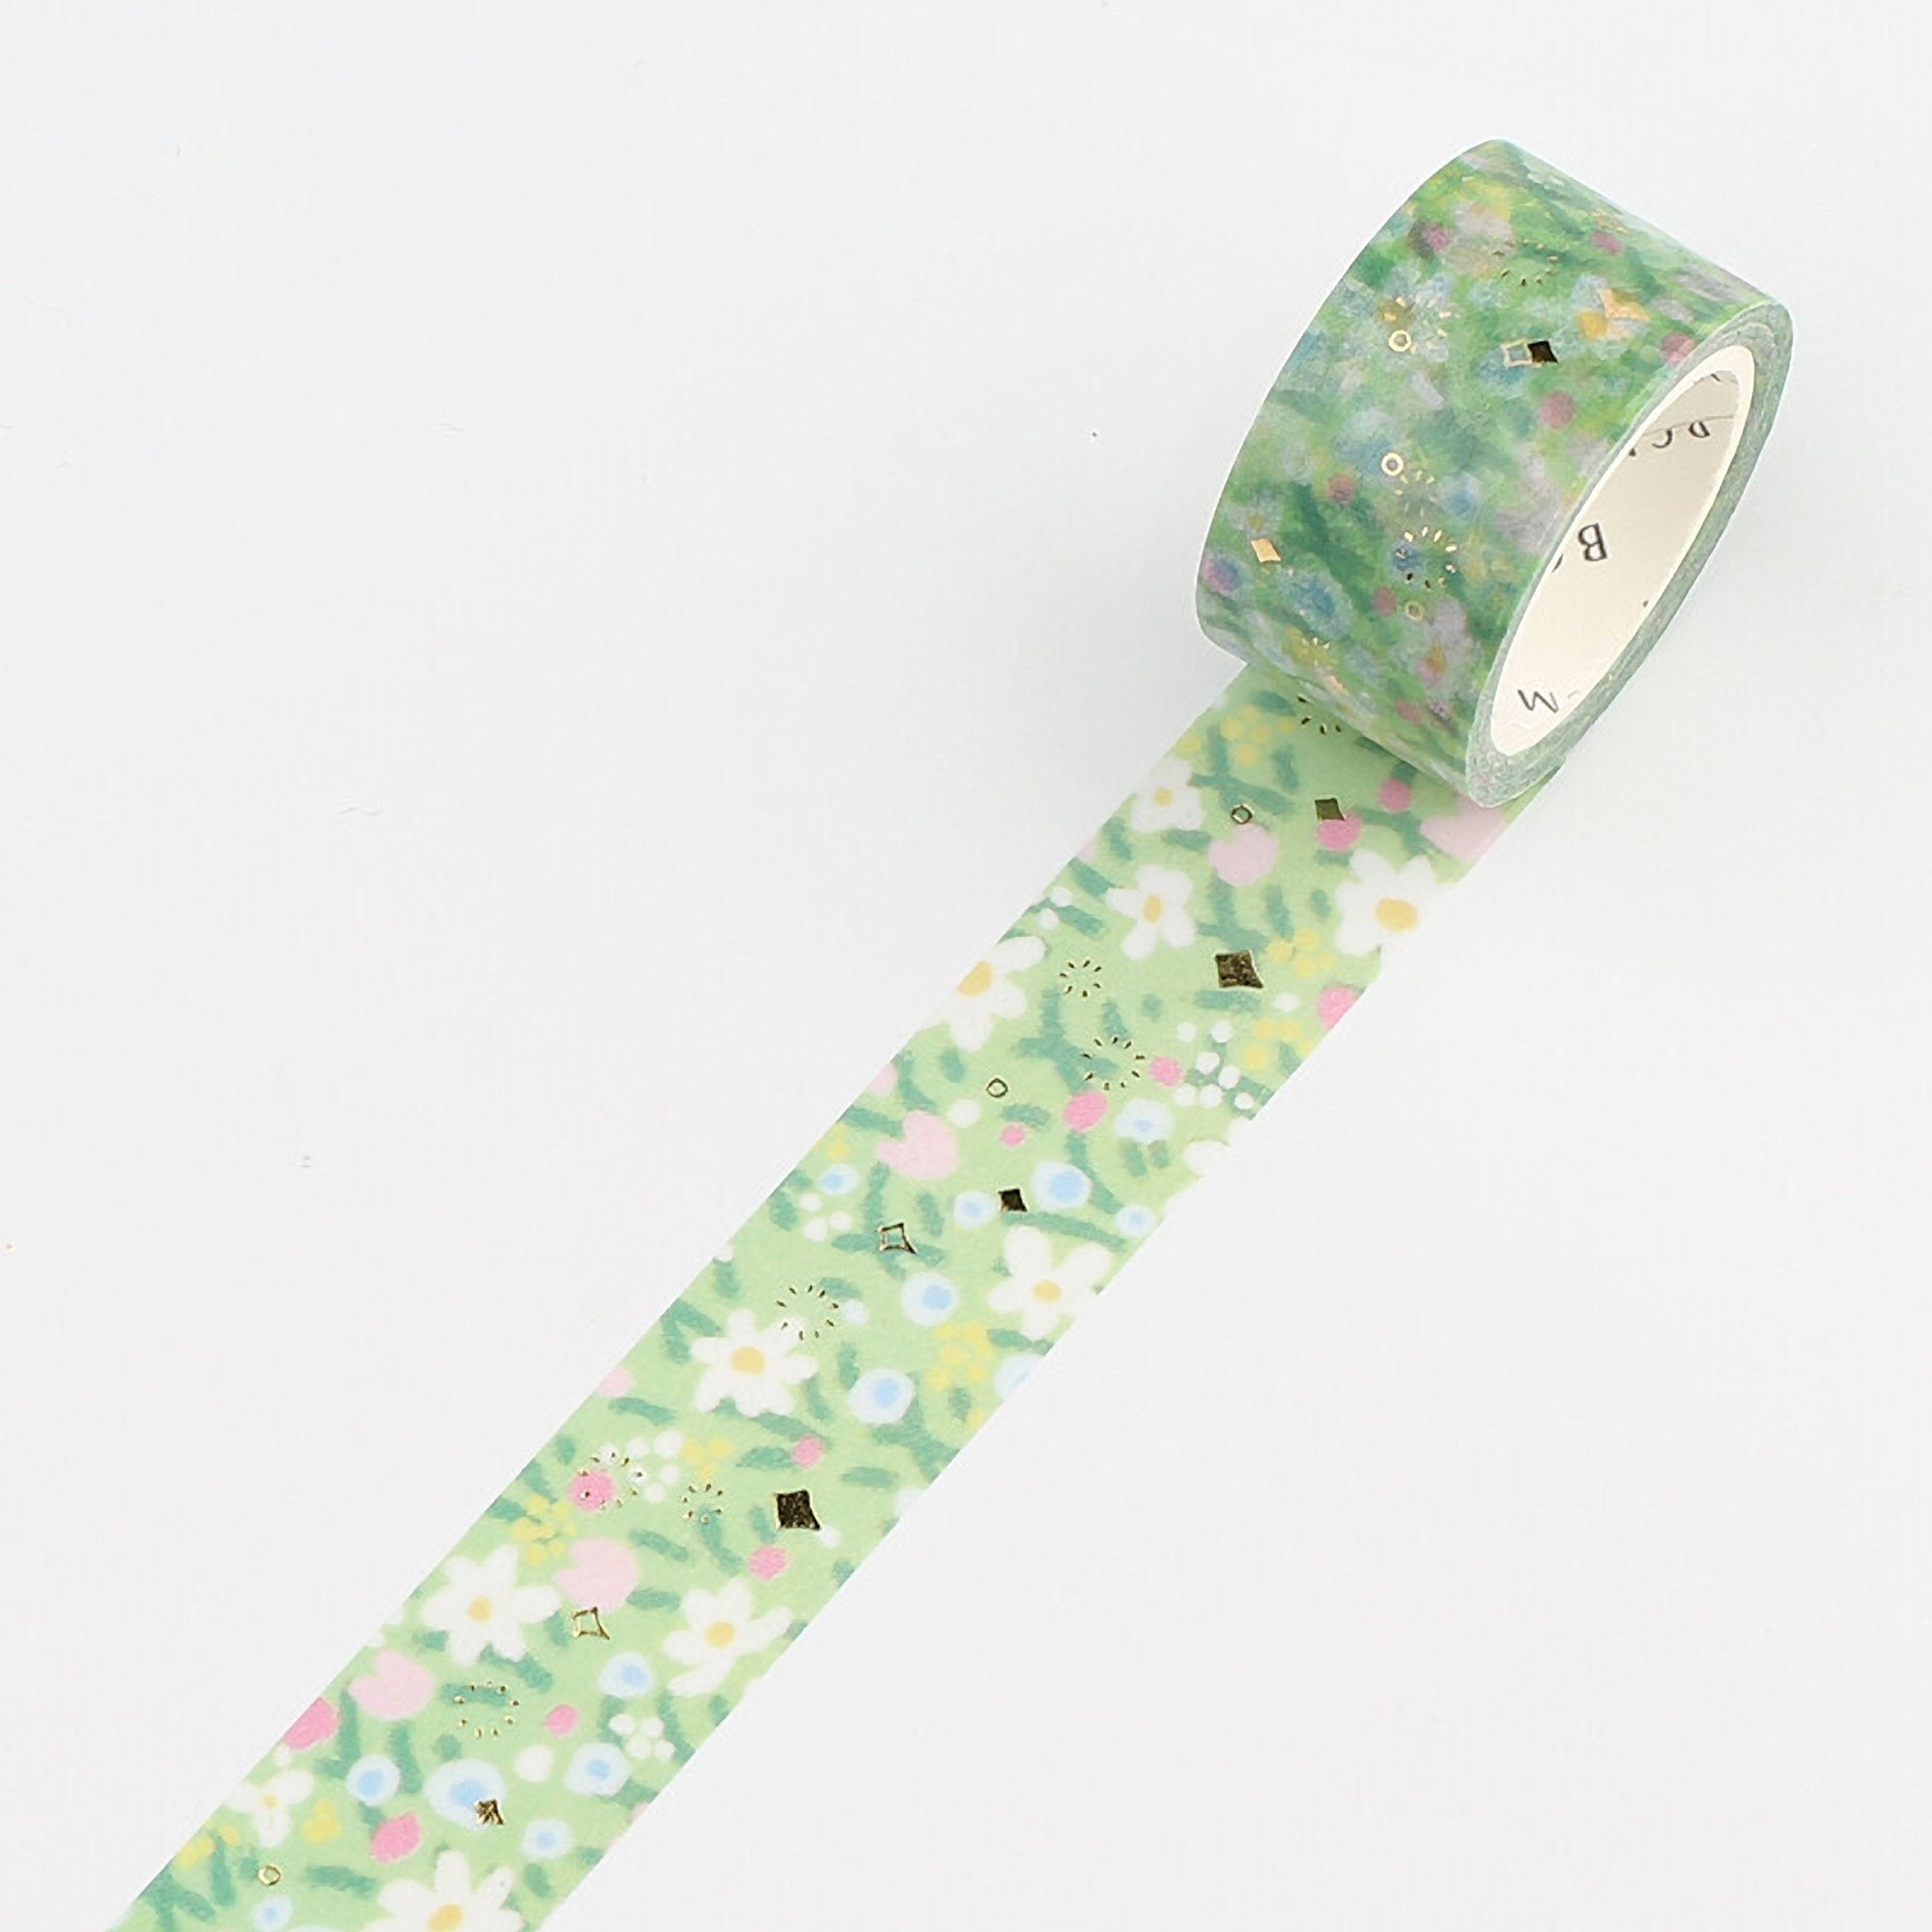 BGM Spring Yard Spring Lawn Summer Lawn GOLD FOIL Washi Tape - The Stationery Life!